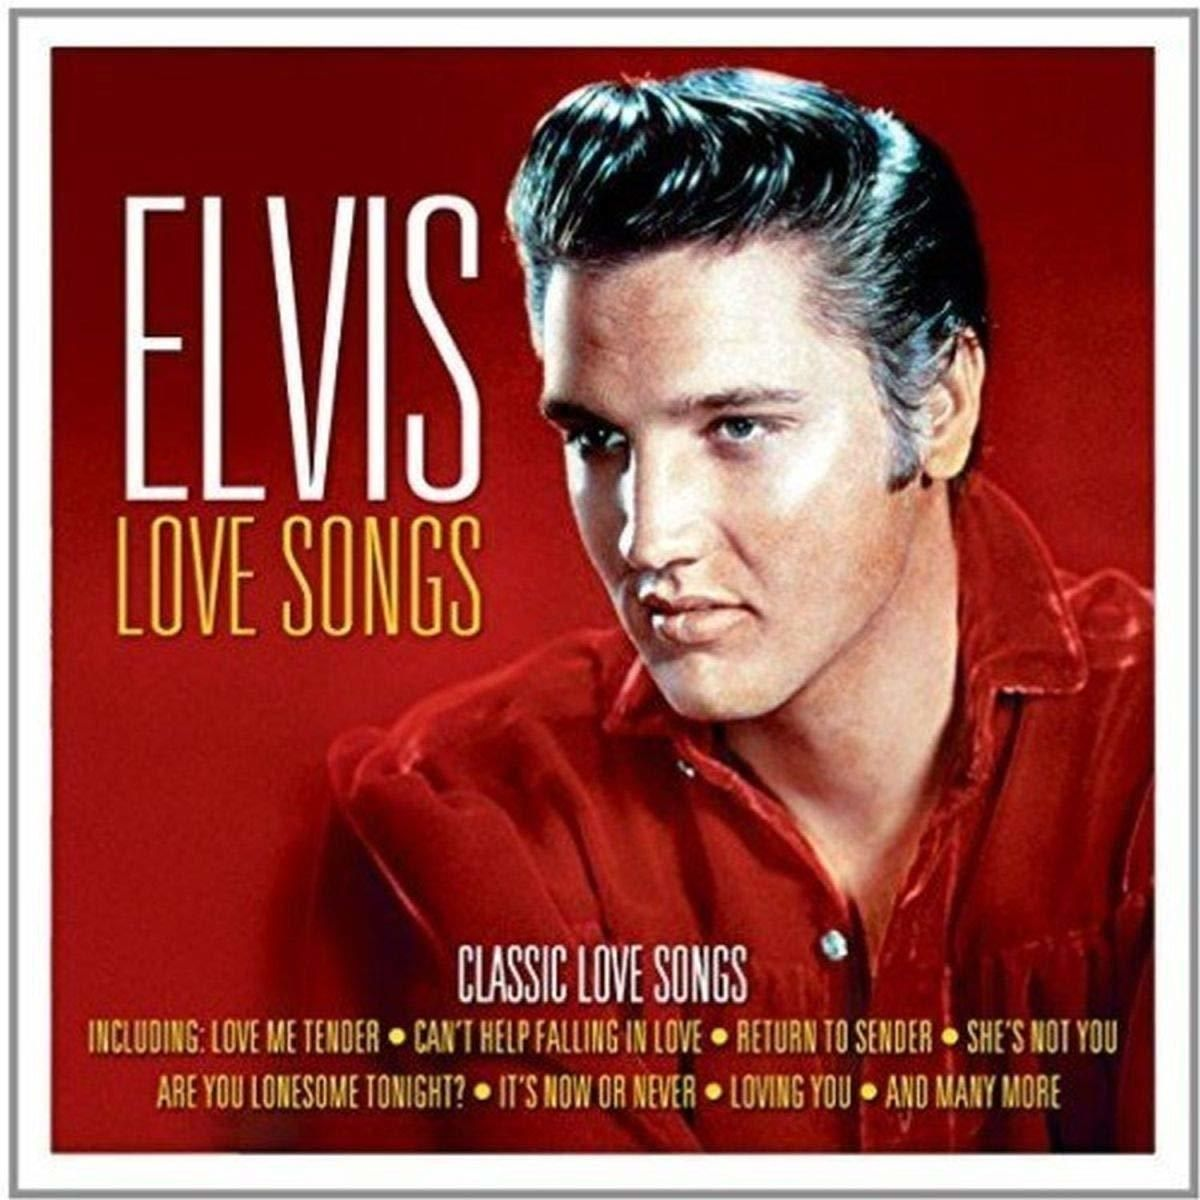 Disc: 1 1. Can't Help Falling In Love 2. It's Now Or Never 3. She's Not You 4. The Girl Of My Best Friend 5. I'm Coming Home 6. Fever 7. Shoppin' Around 8. That's When Your Heartaches Begin 9. (Now And Then There's) A Fool Such As I 10. One Night 11. Don't Ask Me Why 12. I'm Left, You're Right, She's Gone 13. Blue Hawaii 14. I Beg Of You 15. A Mess Of Blues 16. Love Me 17. Don't Leave Me Now 18. Don't 19. I Forgot To Remember To Forget 20. How's The World Treating You? 21. Such A Night 22. Are Y